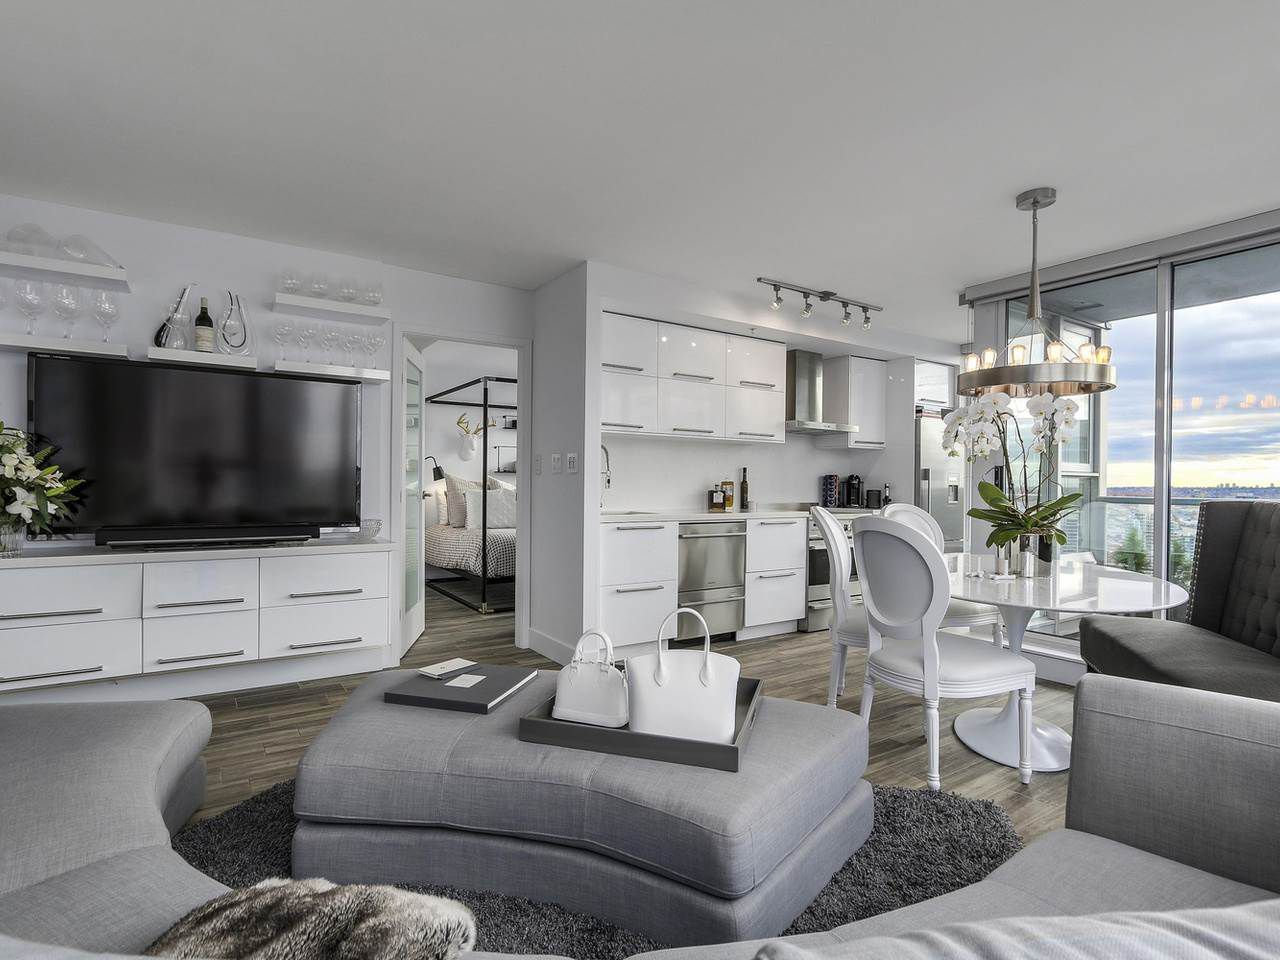 Main Photo: PH 3001 131 REGIMENT Square in Vancouver: Downtown VW Condo for sale (Vancouver West)  : MLS®# R2119062